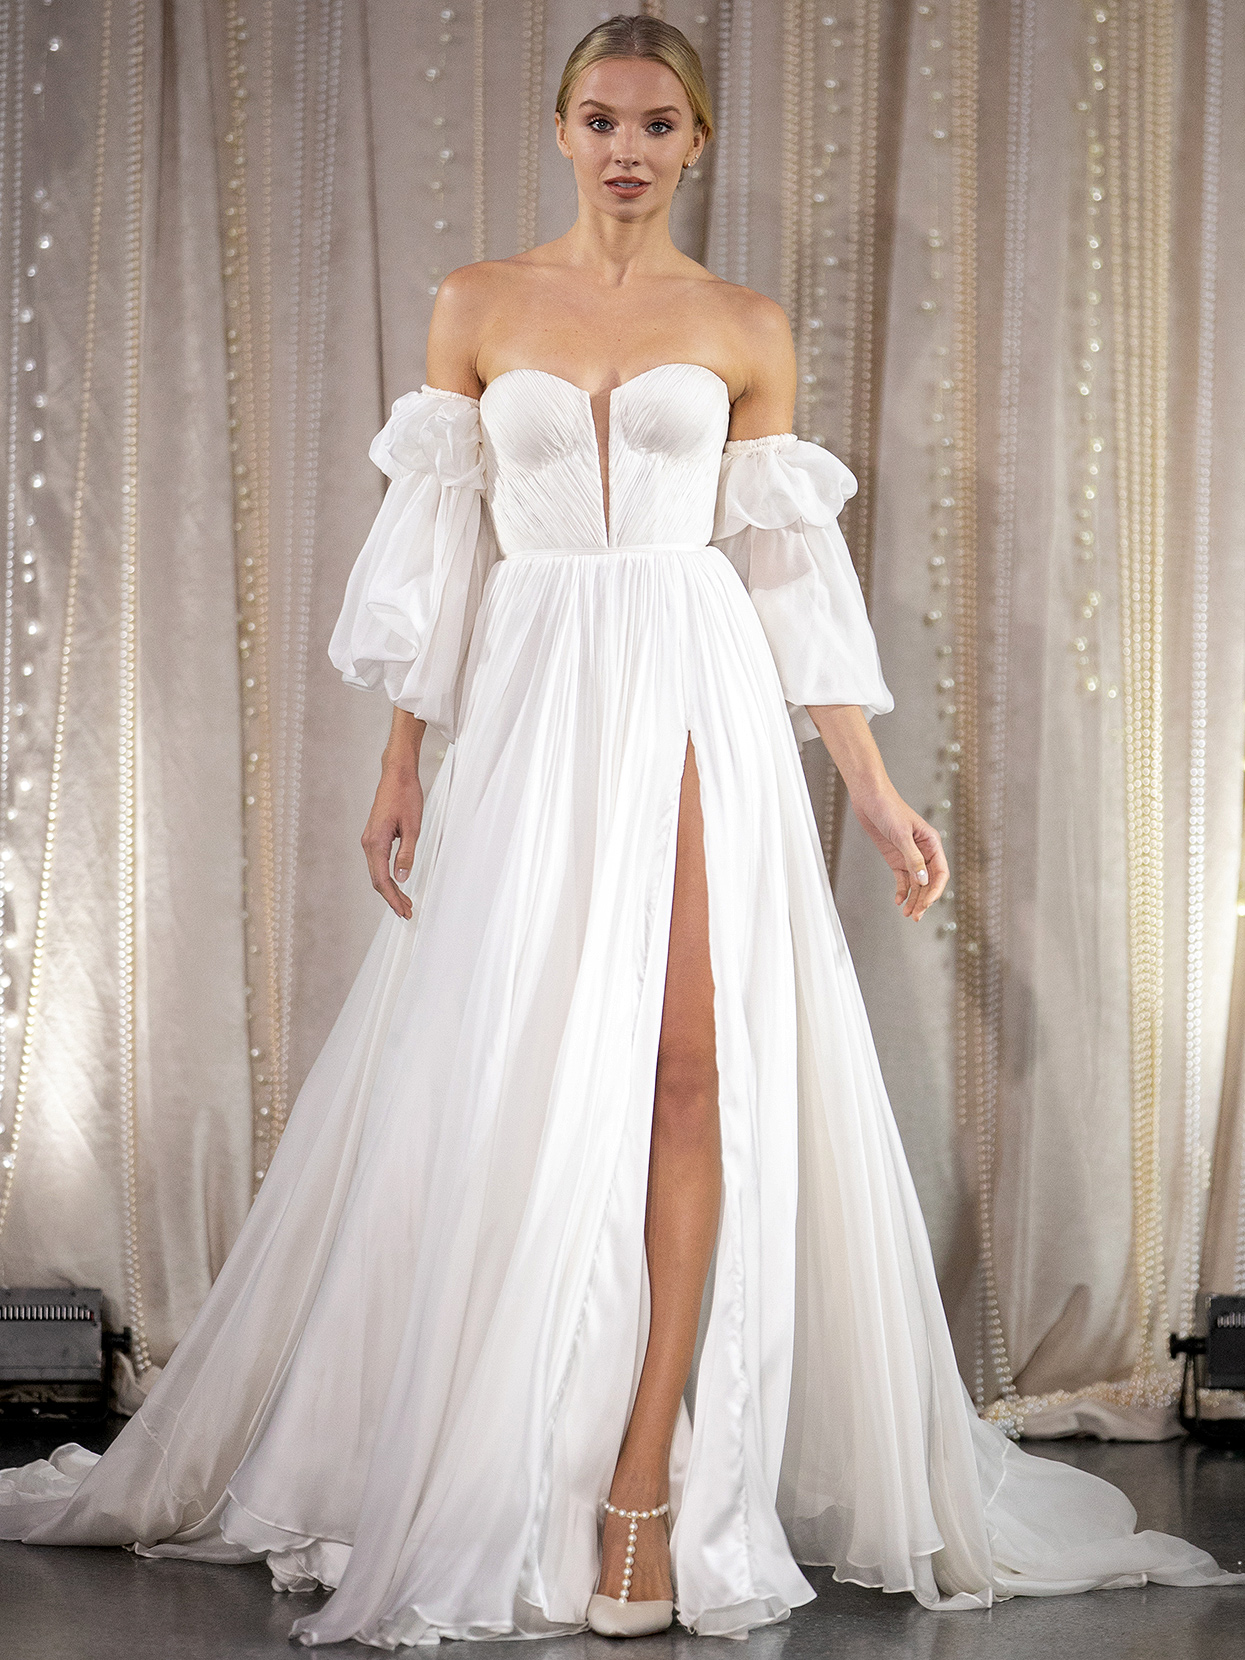 Lee Petra Grebenau ruched sweetheart with sleeves wedding dress fall 2020